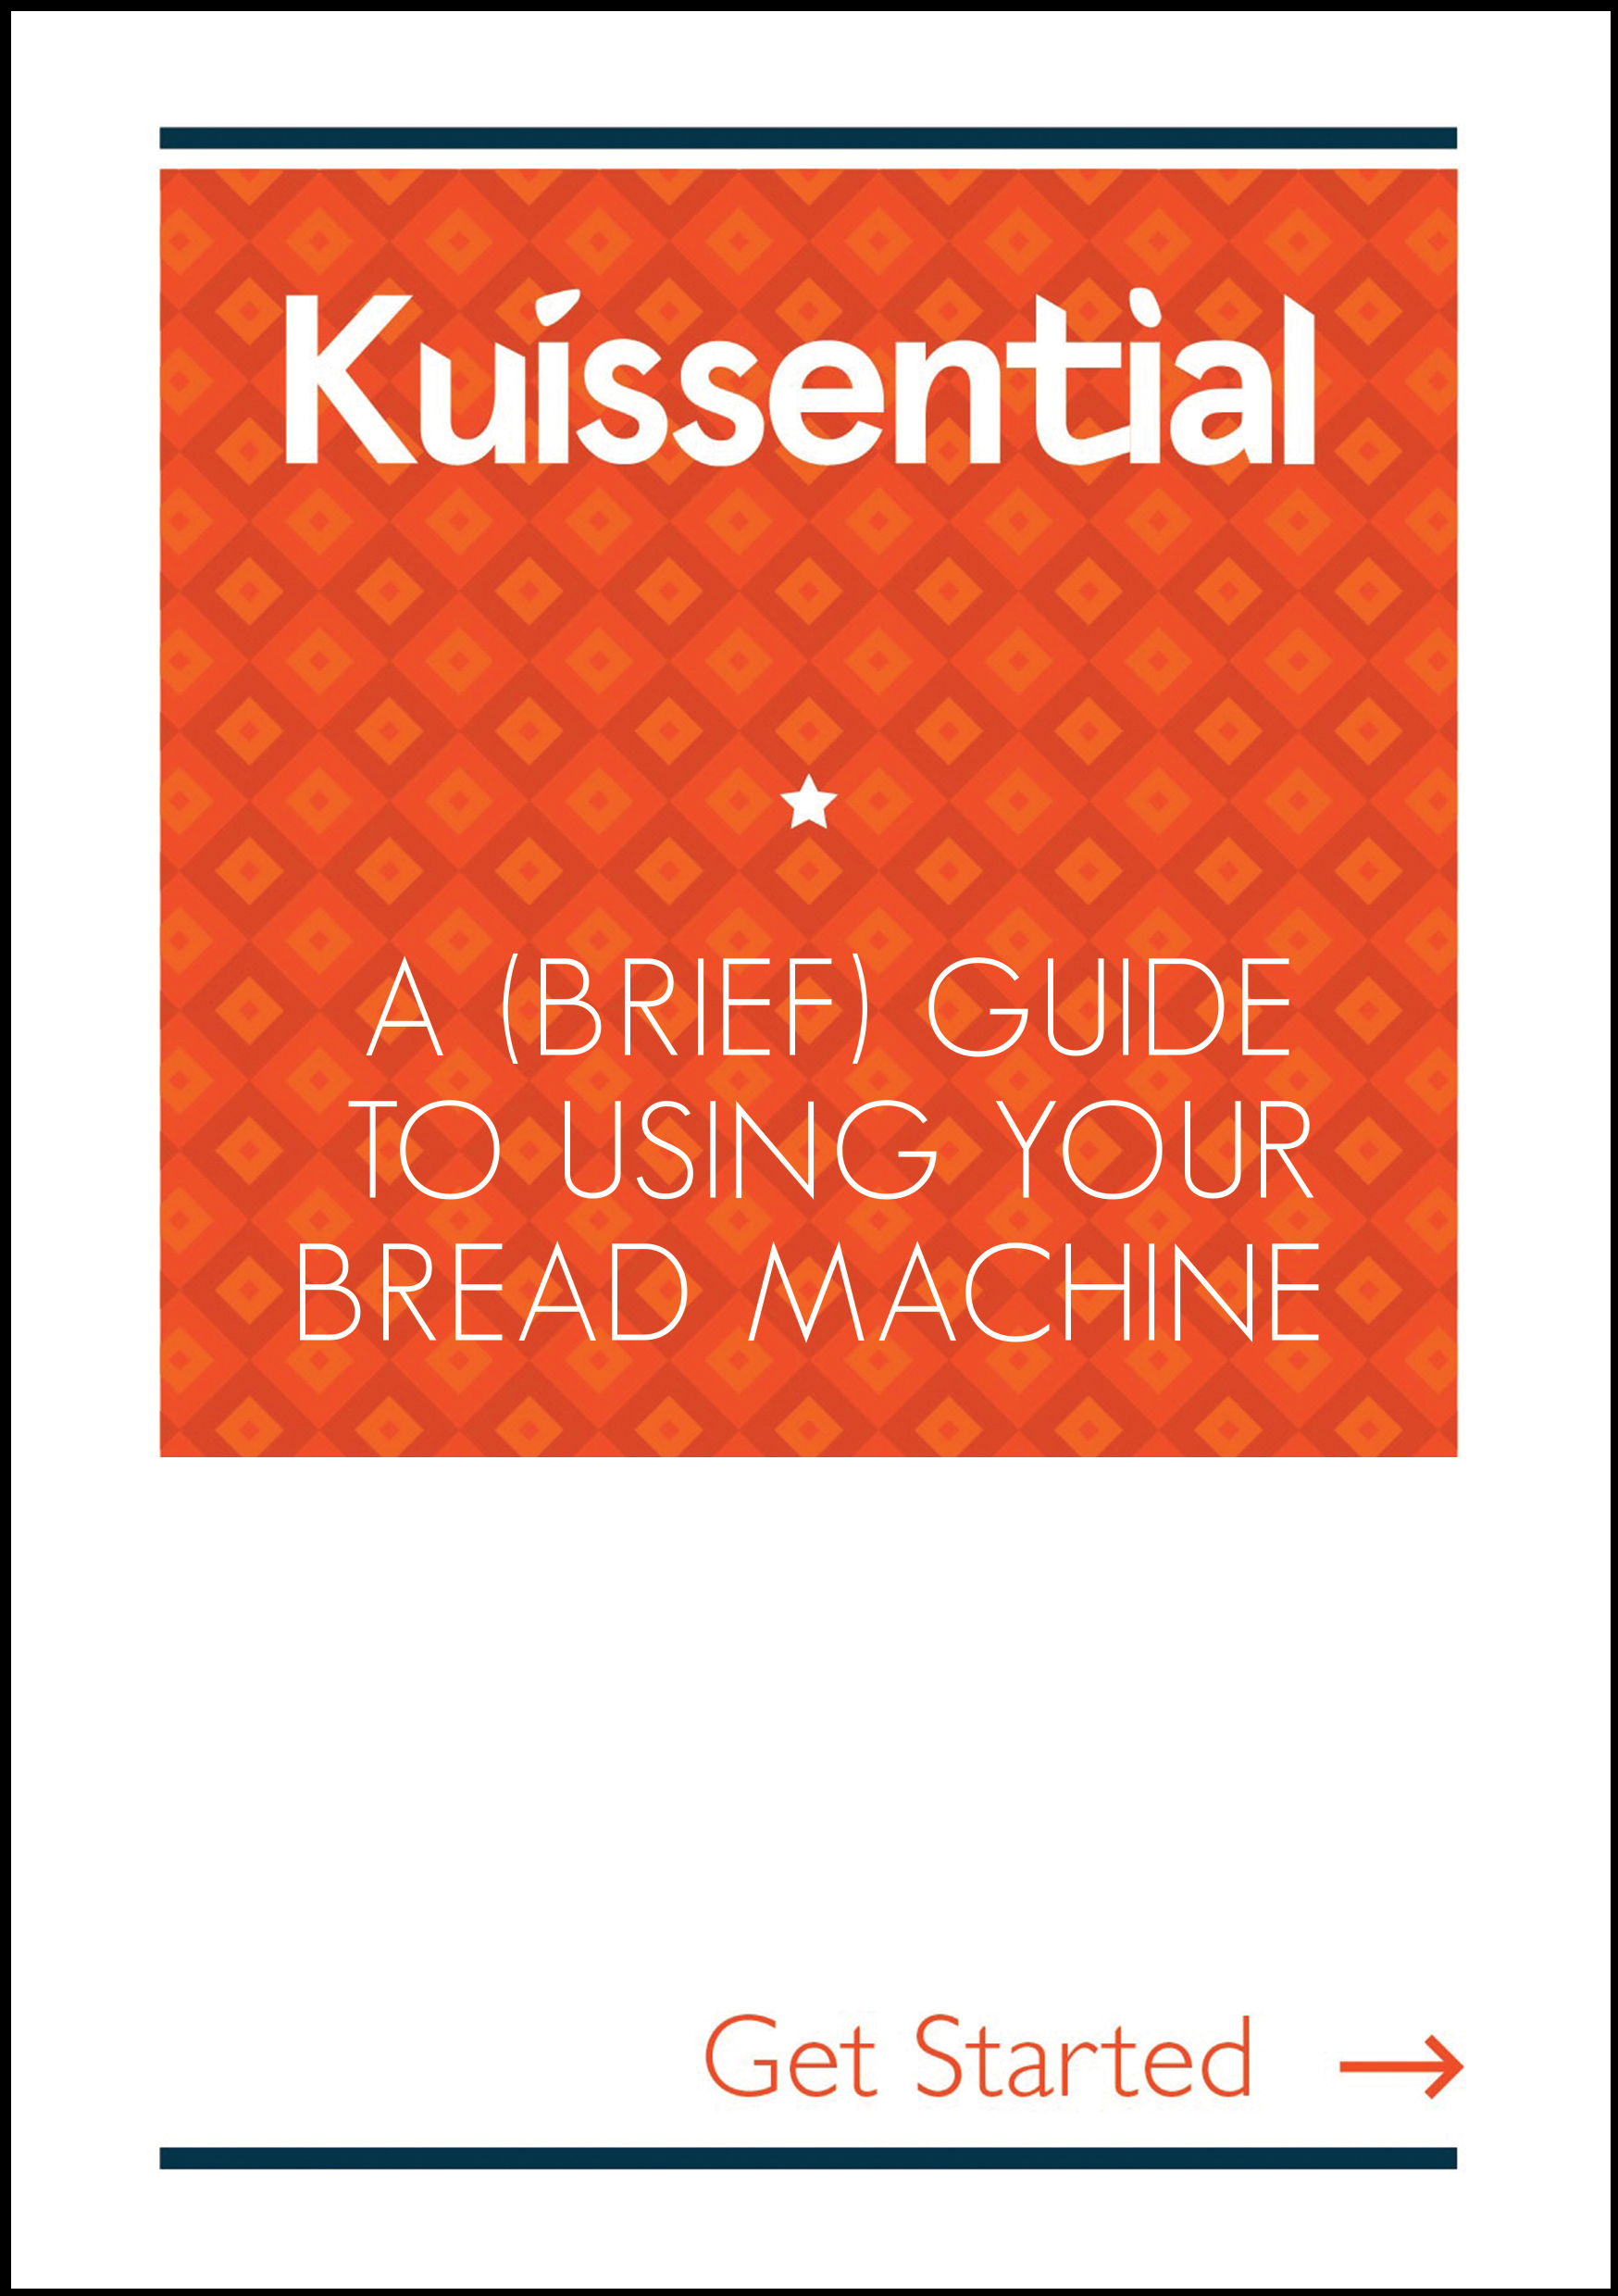 Kuissential Bread Machine User Manual